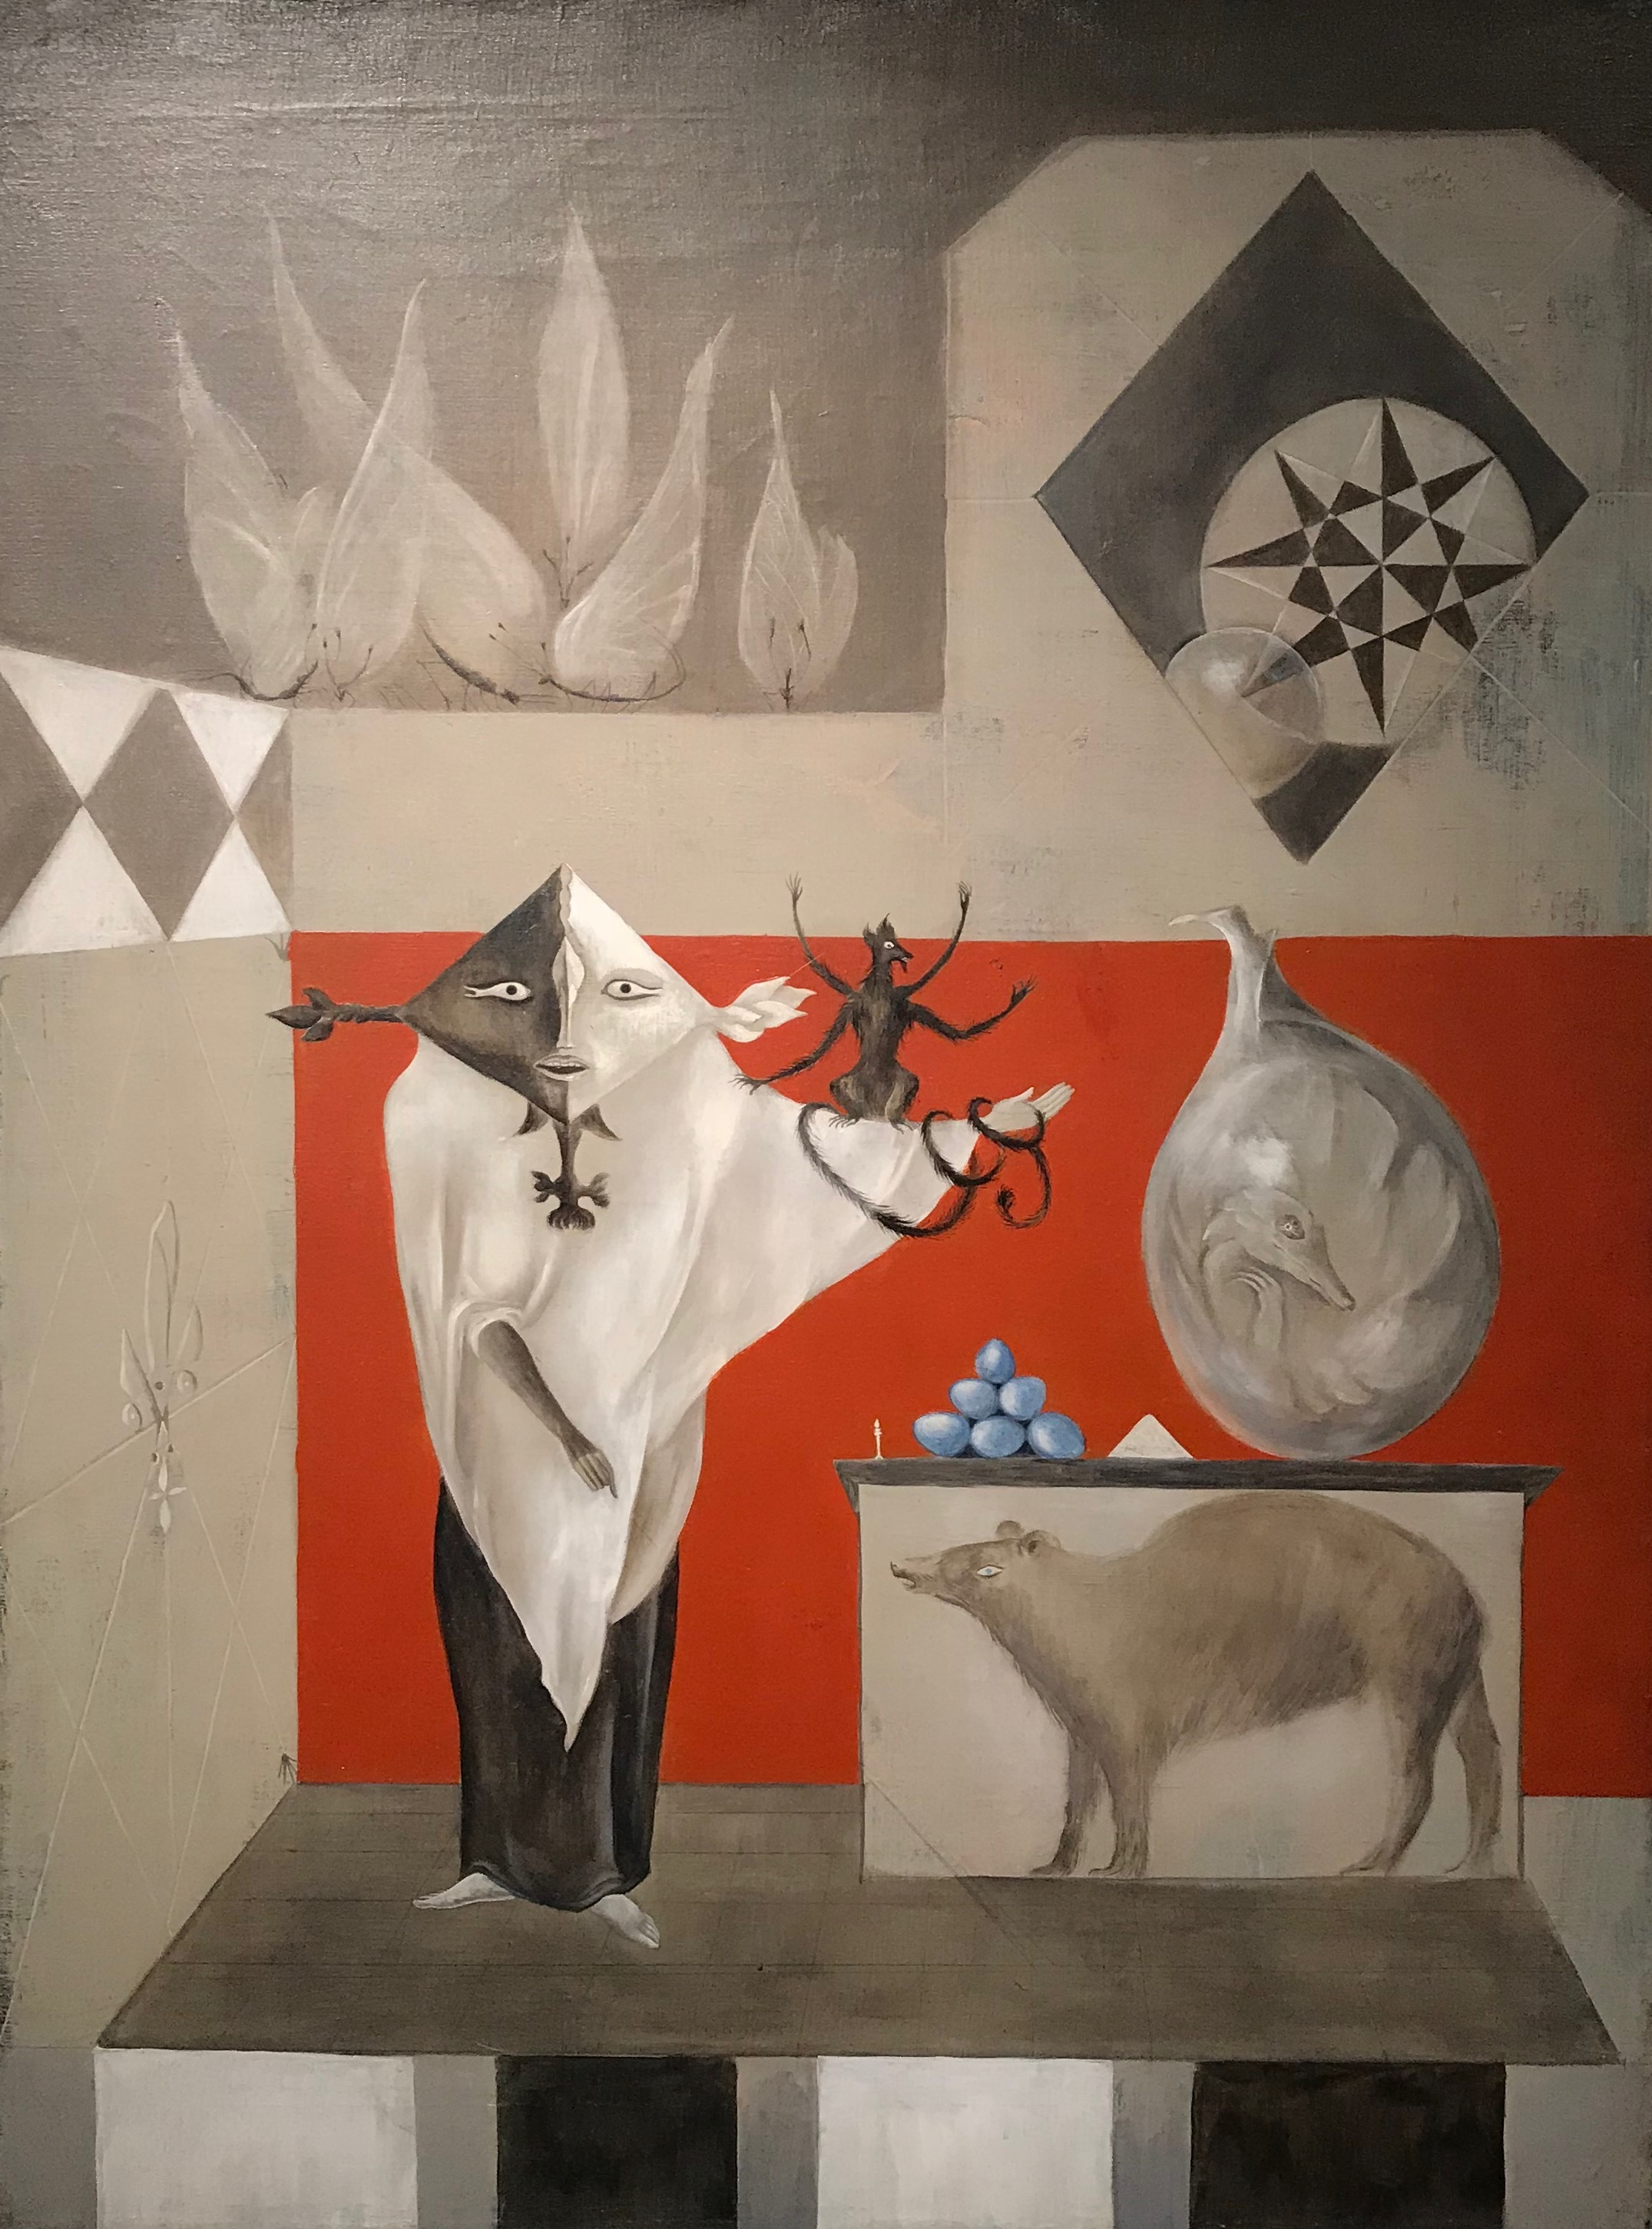 El Nigromante  (The Conjurer) by Leonora Carrington, oil on canvas painting executed in 1957.